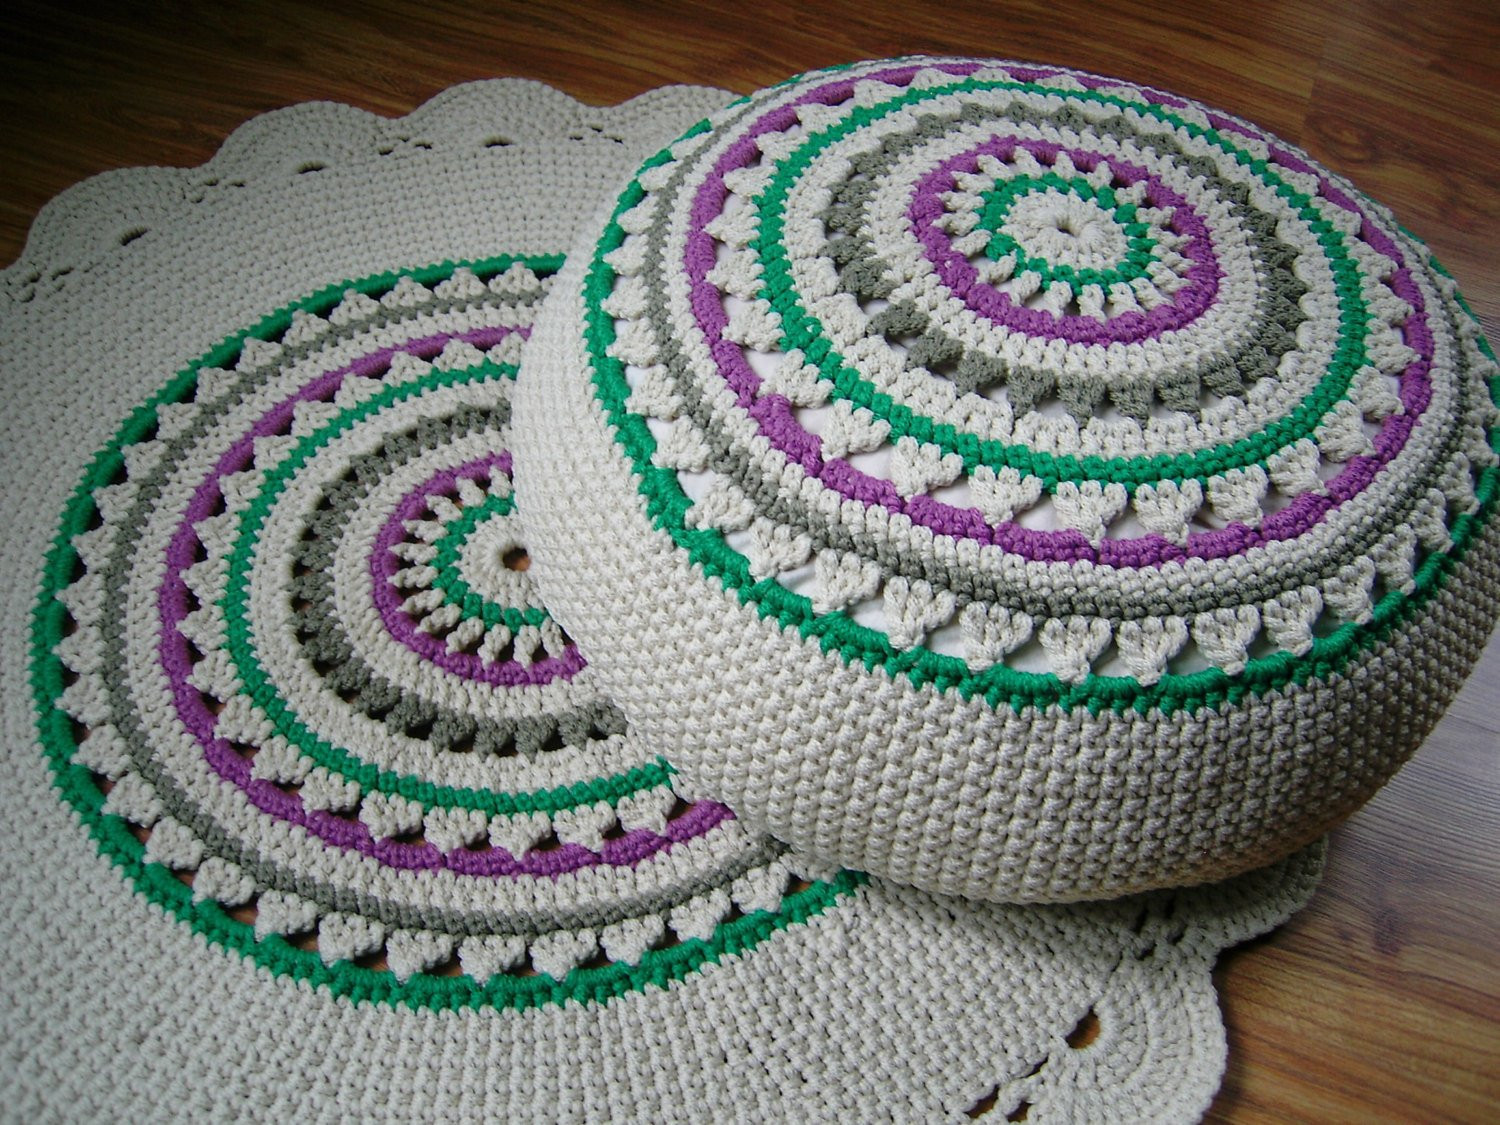 Crochet Ottoman New Crochet Pouf Ottoman Floor Cushion Eco by Crochetfolkart Of Incredible 42 Ideas Crochet Ottoman